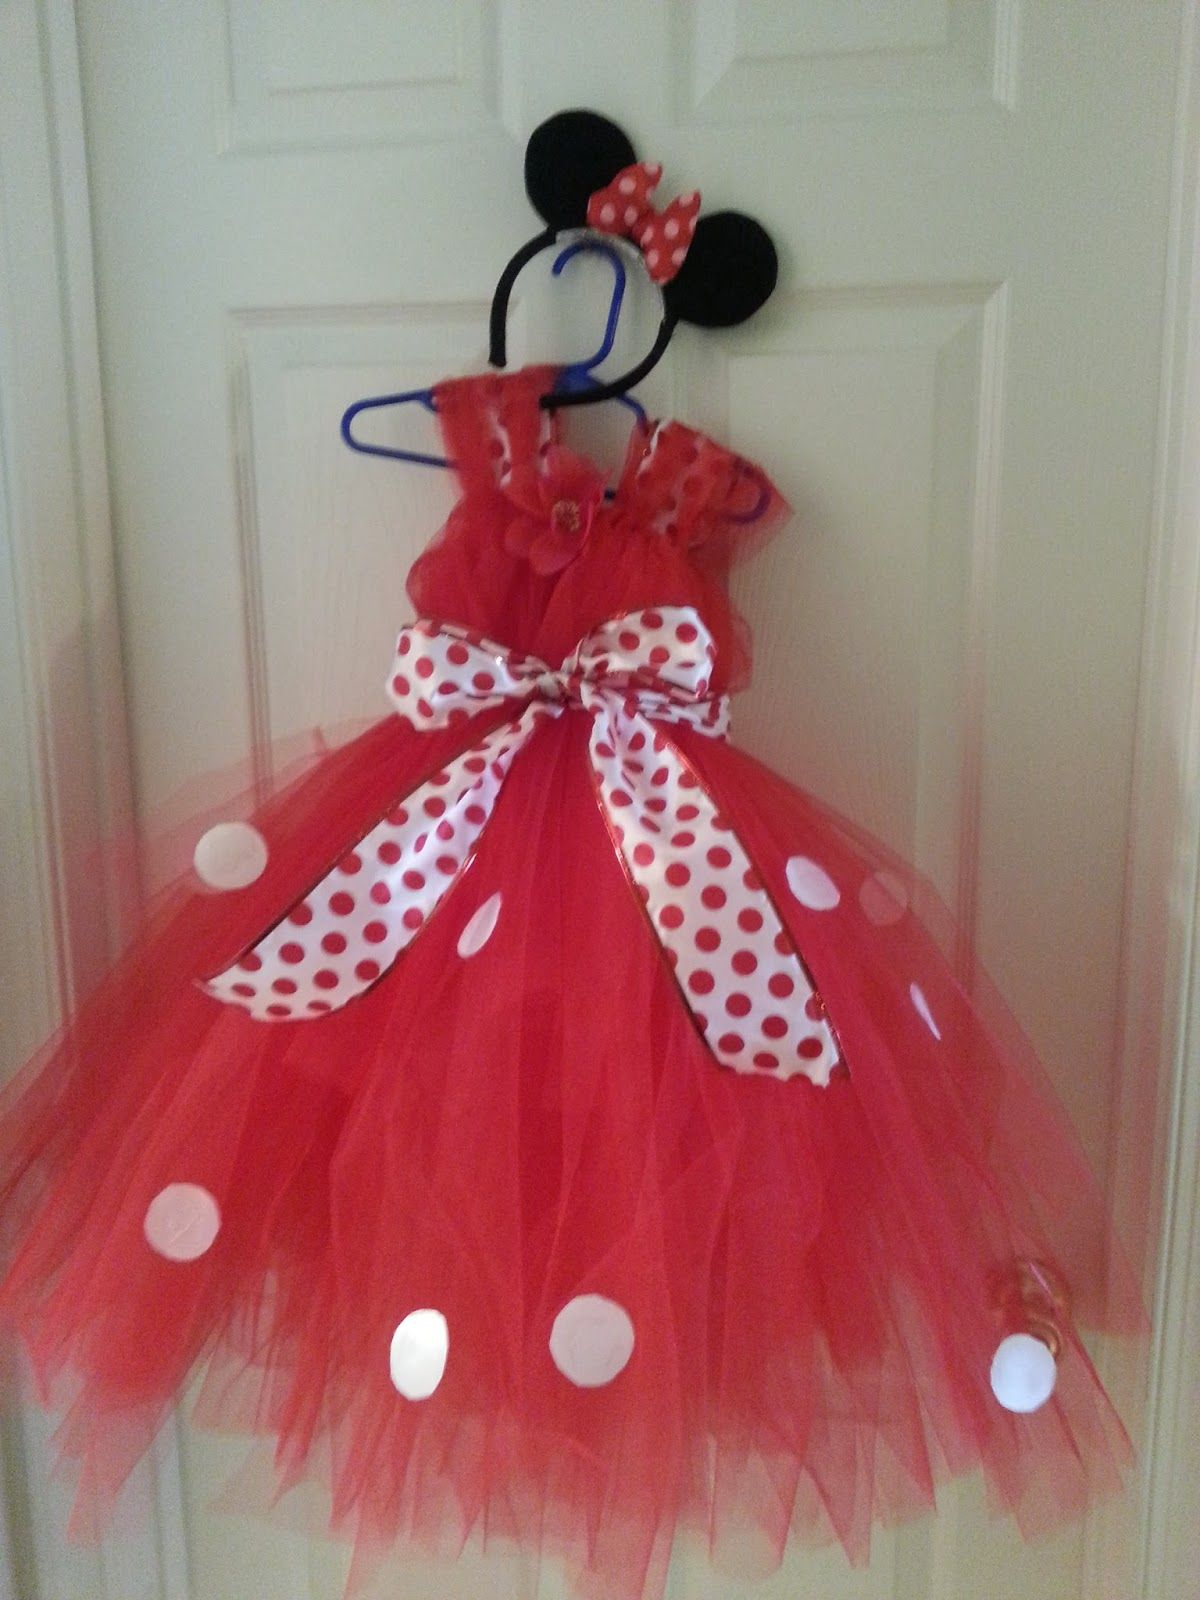 Do it yourself tulle costumes for teens diy minnie mouse tutu do it yourself tulle costumes for teens diy minnie mouse tutu dress solutioingenieria Choice Image